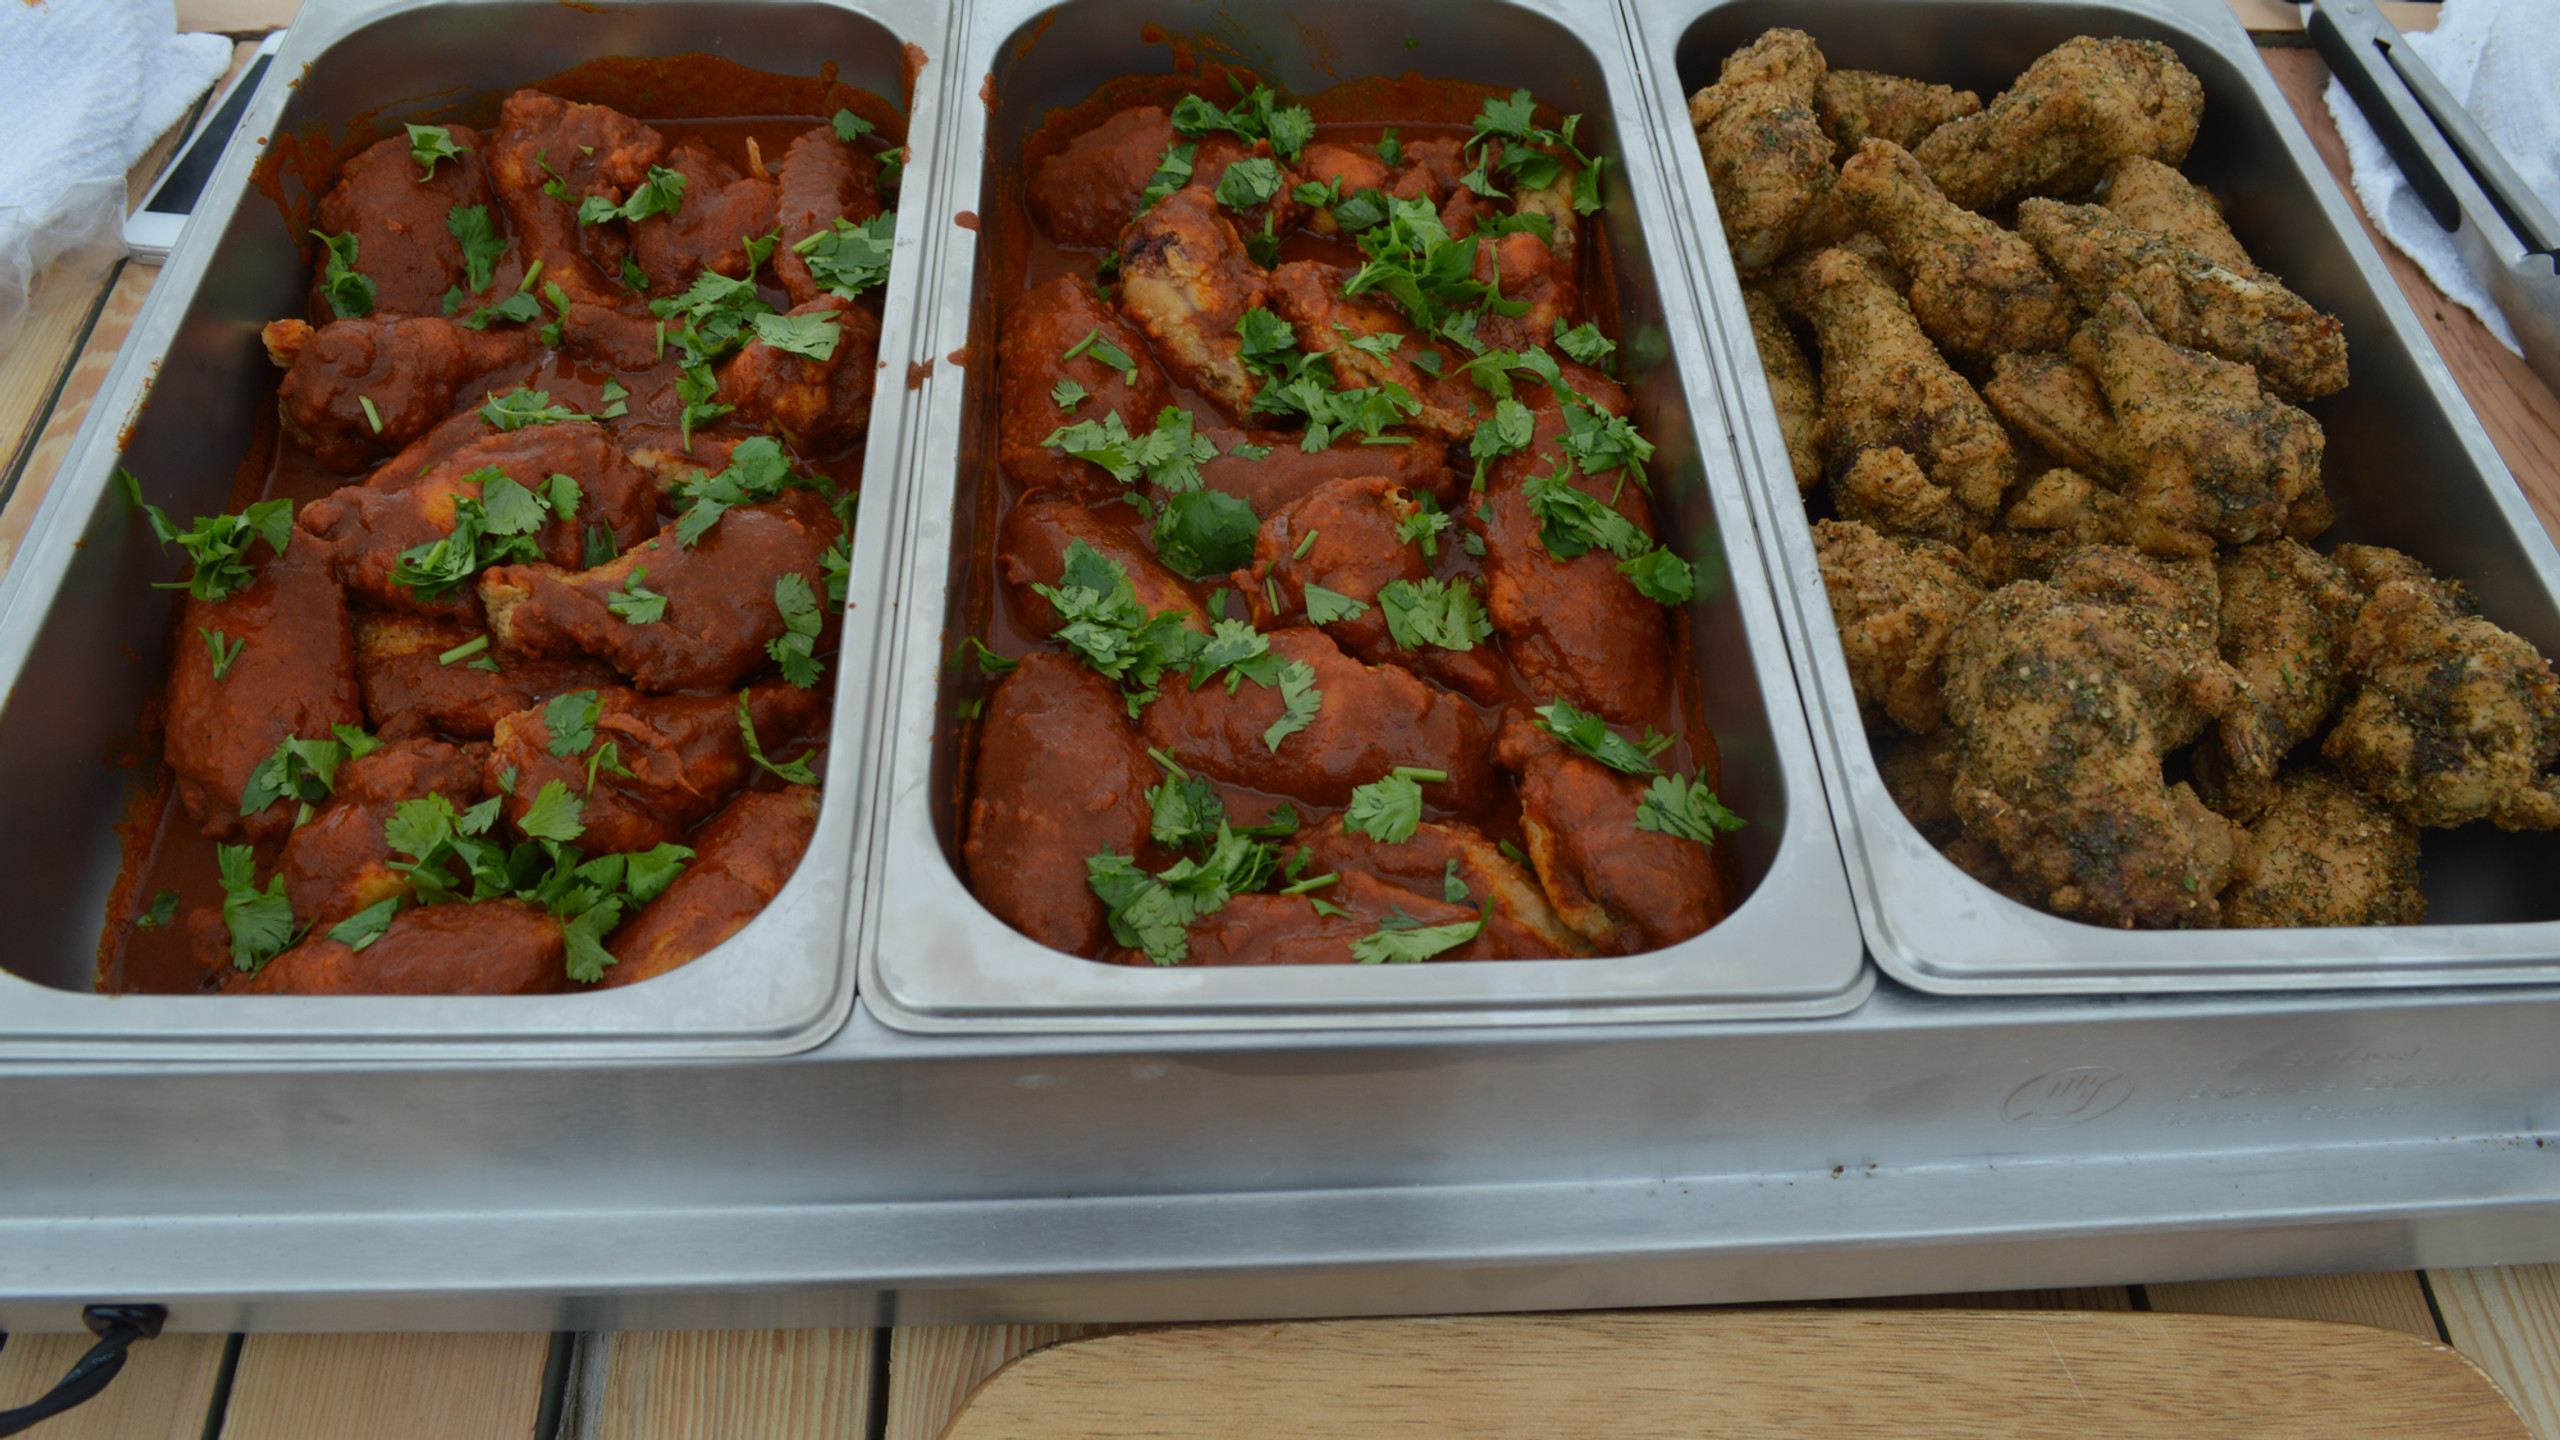 Triple Smoke featuring Pickled Chipotle dry wings, and West Coast Curry (aka Bengal Blend)  Saucy wings!